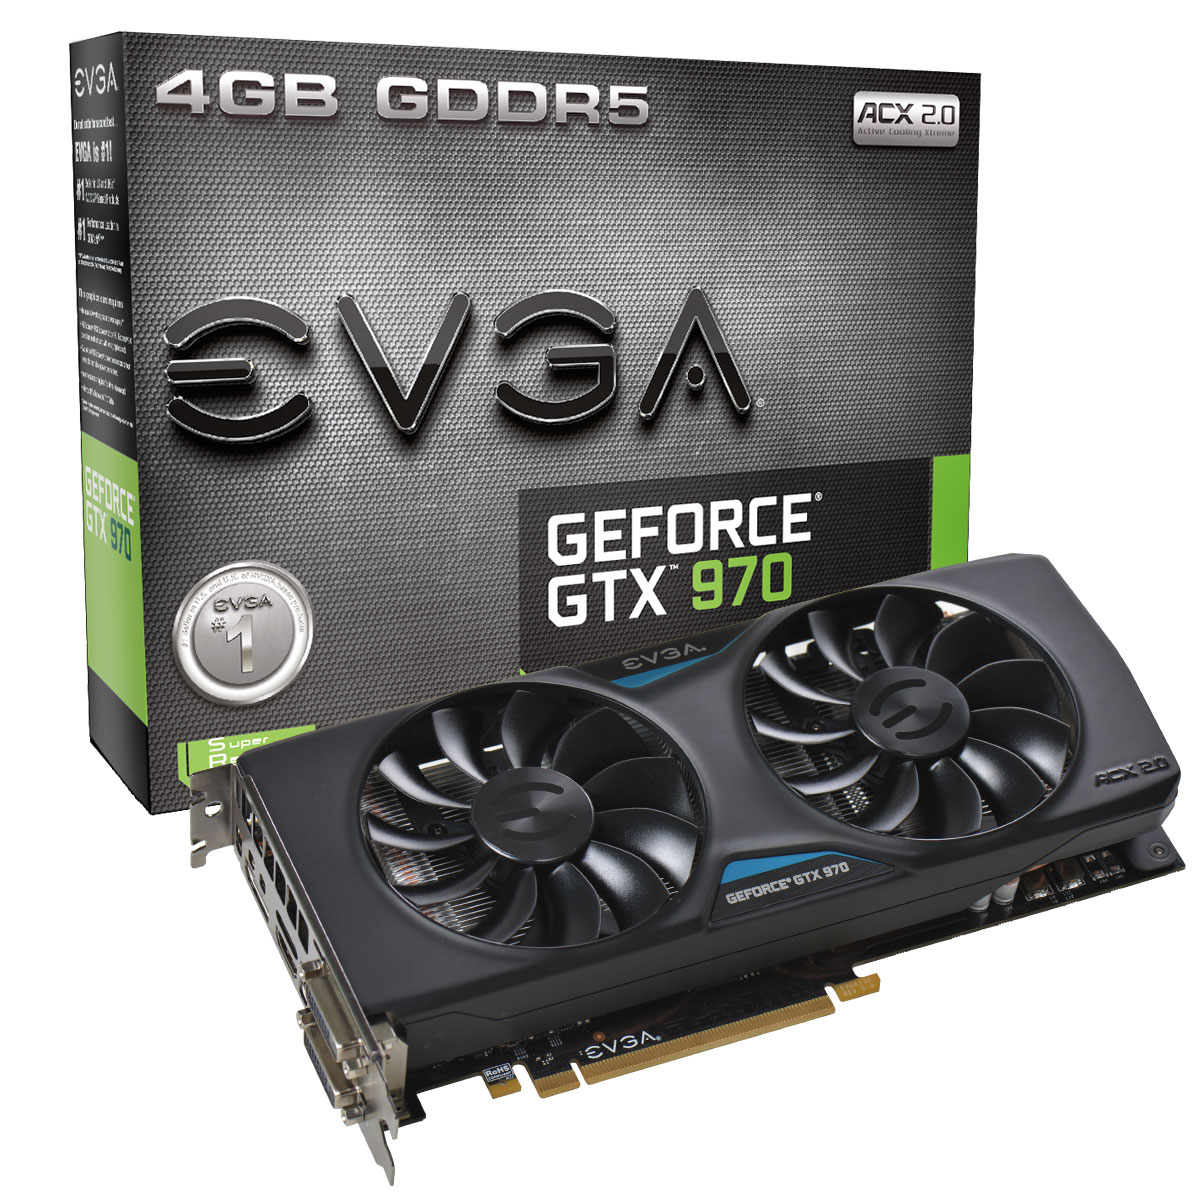 EVGA GeForce GTX 970 ACX 2.0 Cooler 4GB GDDR5 Graphics Card